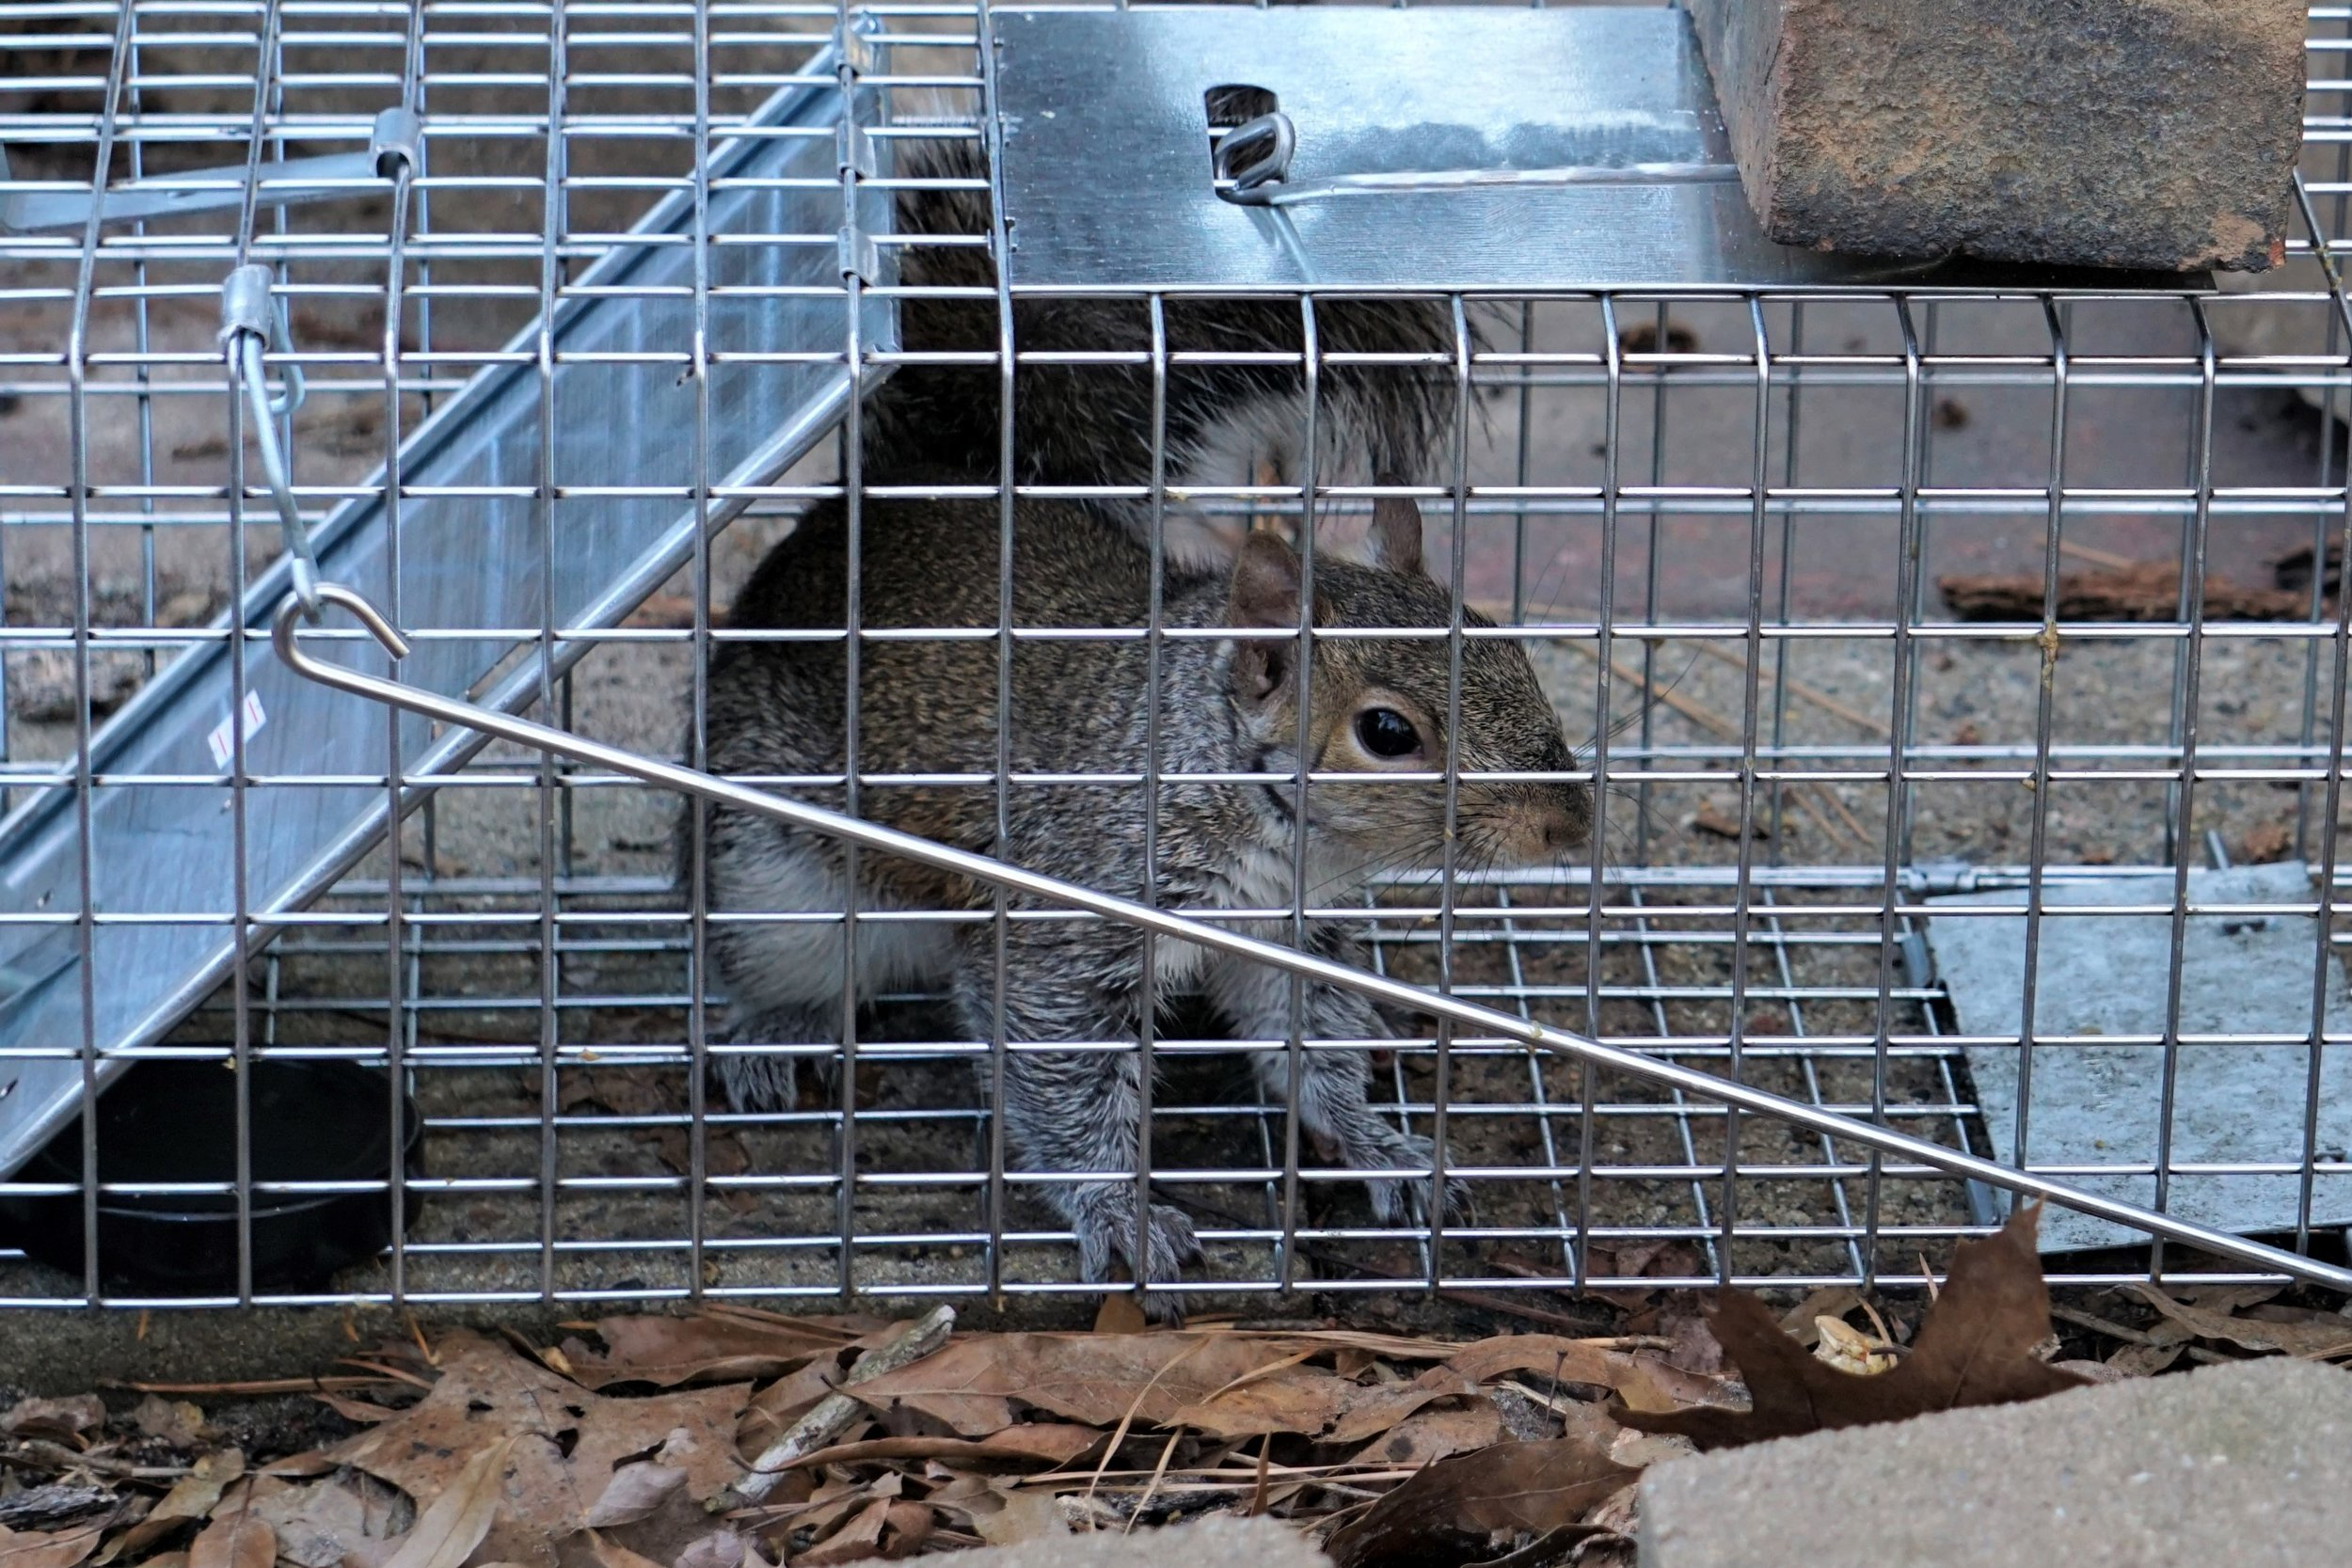 Squirrel caught in a live trap